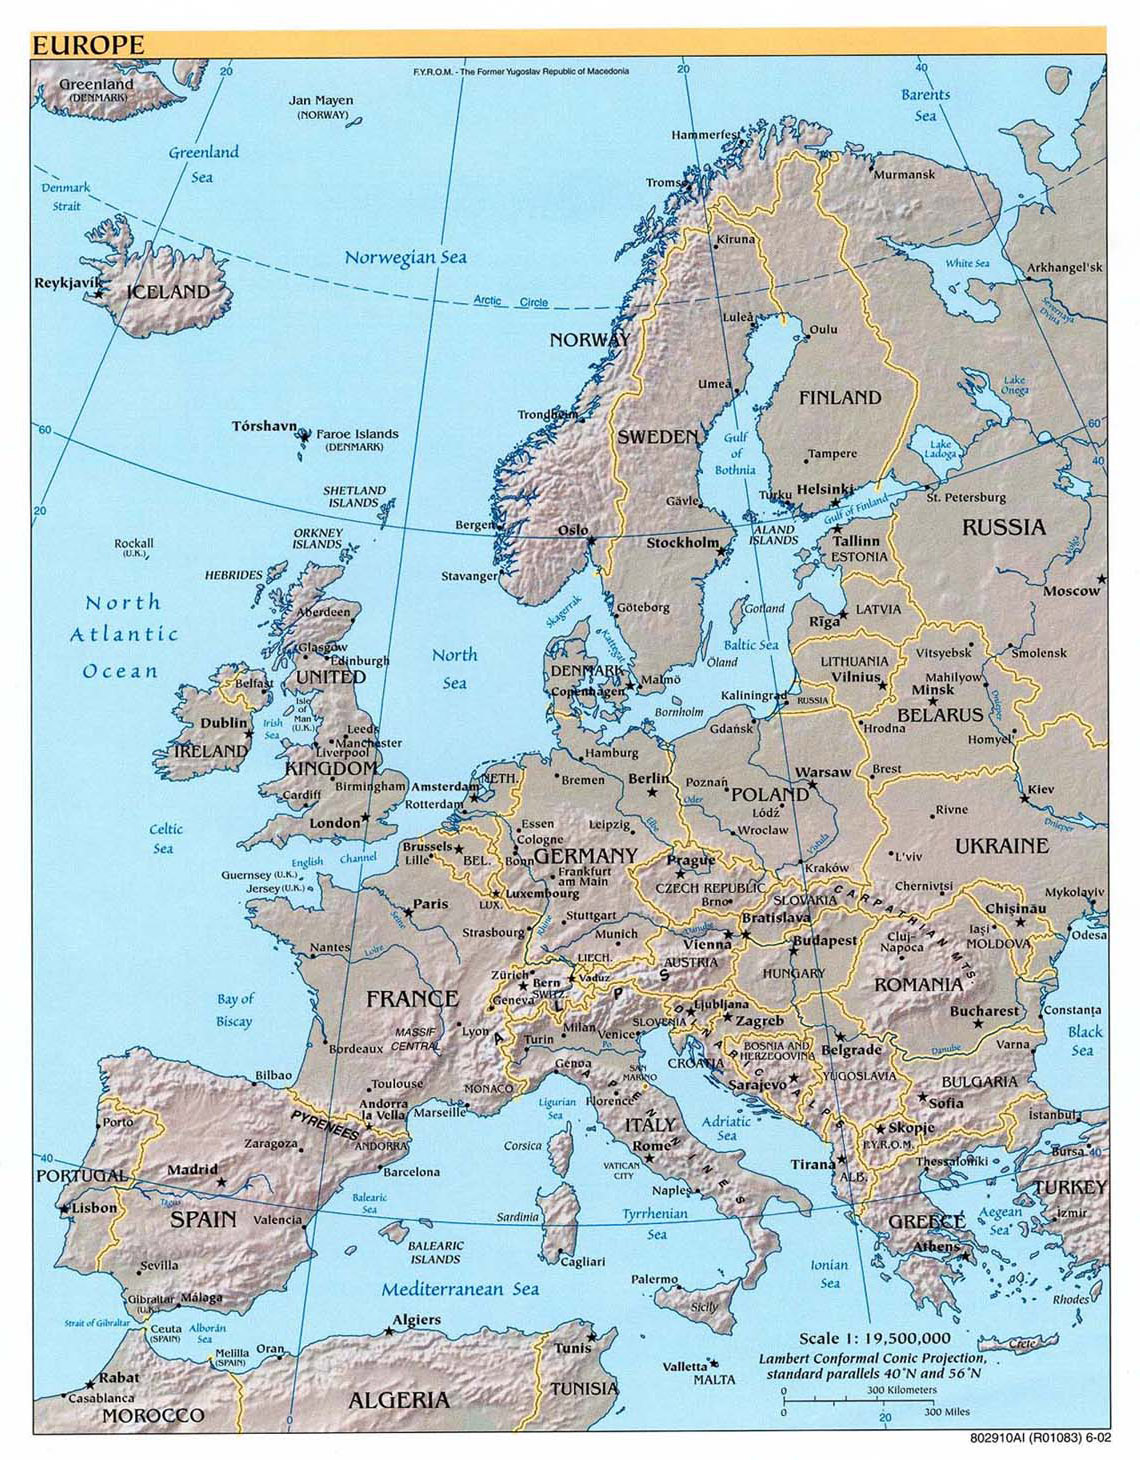 Maps Of Europe And European Countries Political Maps Administrative And Road Maps Physical And Topographical Maps Of Europe With Countries Maps Of The World